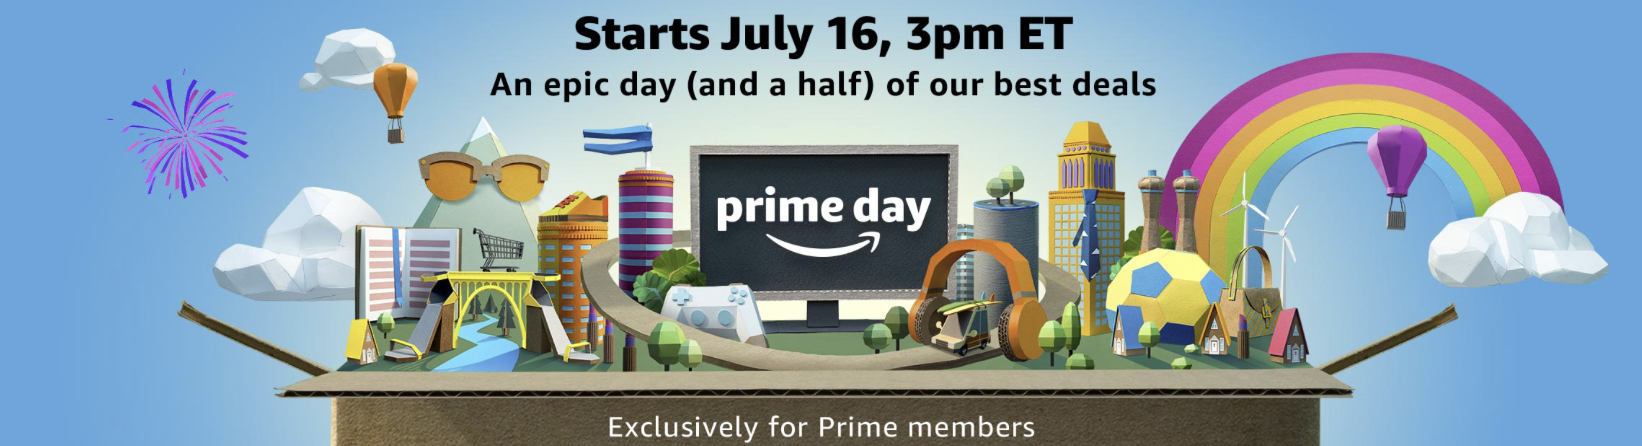 Fitness Prime Day Essentials